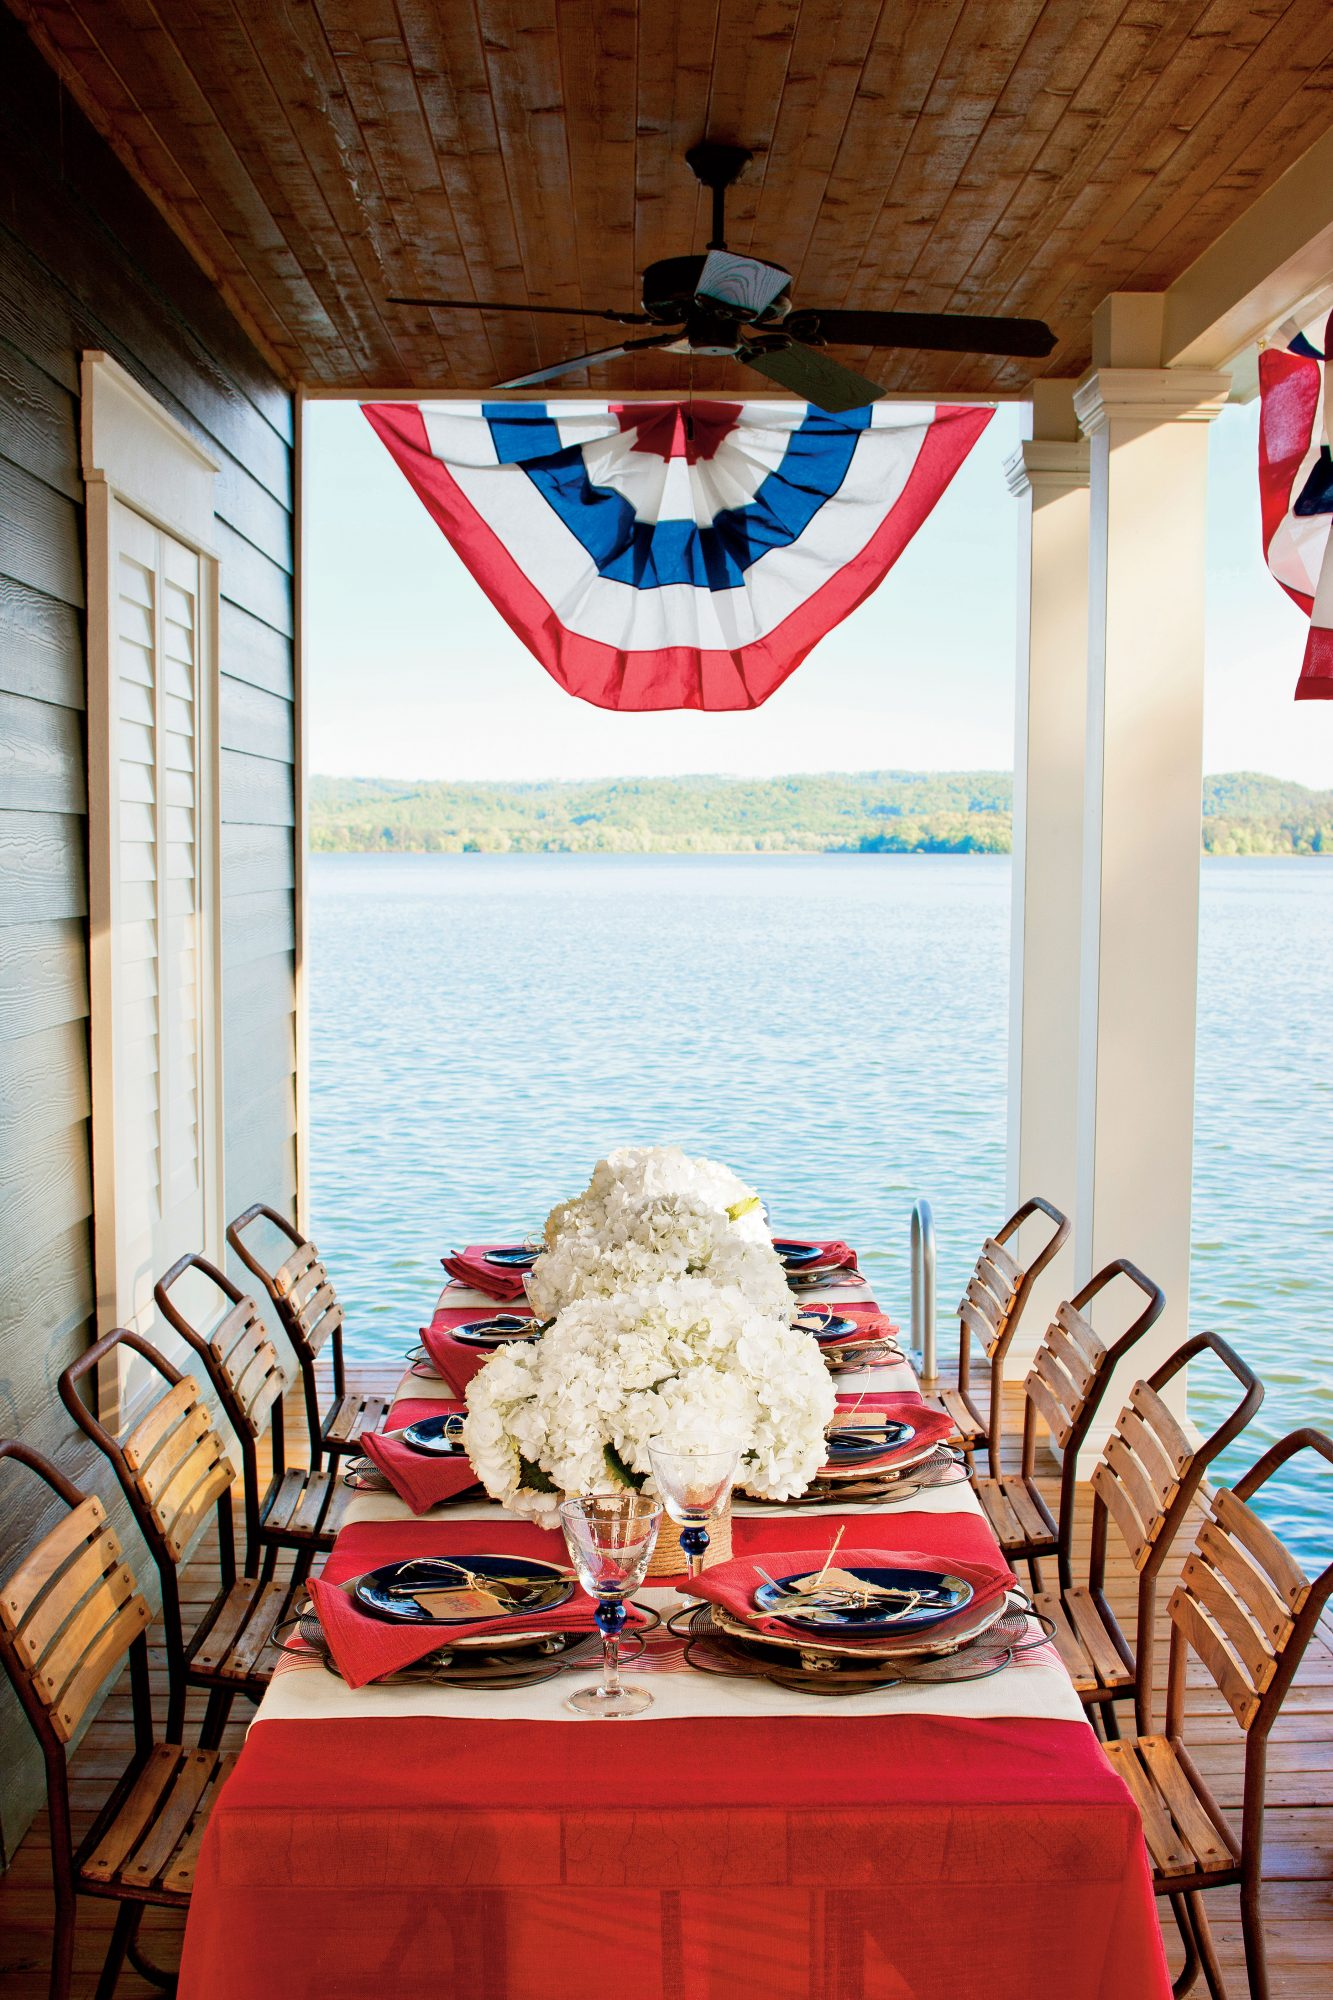 Patriotic Lakeside Table Setting